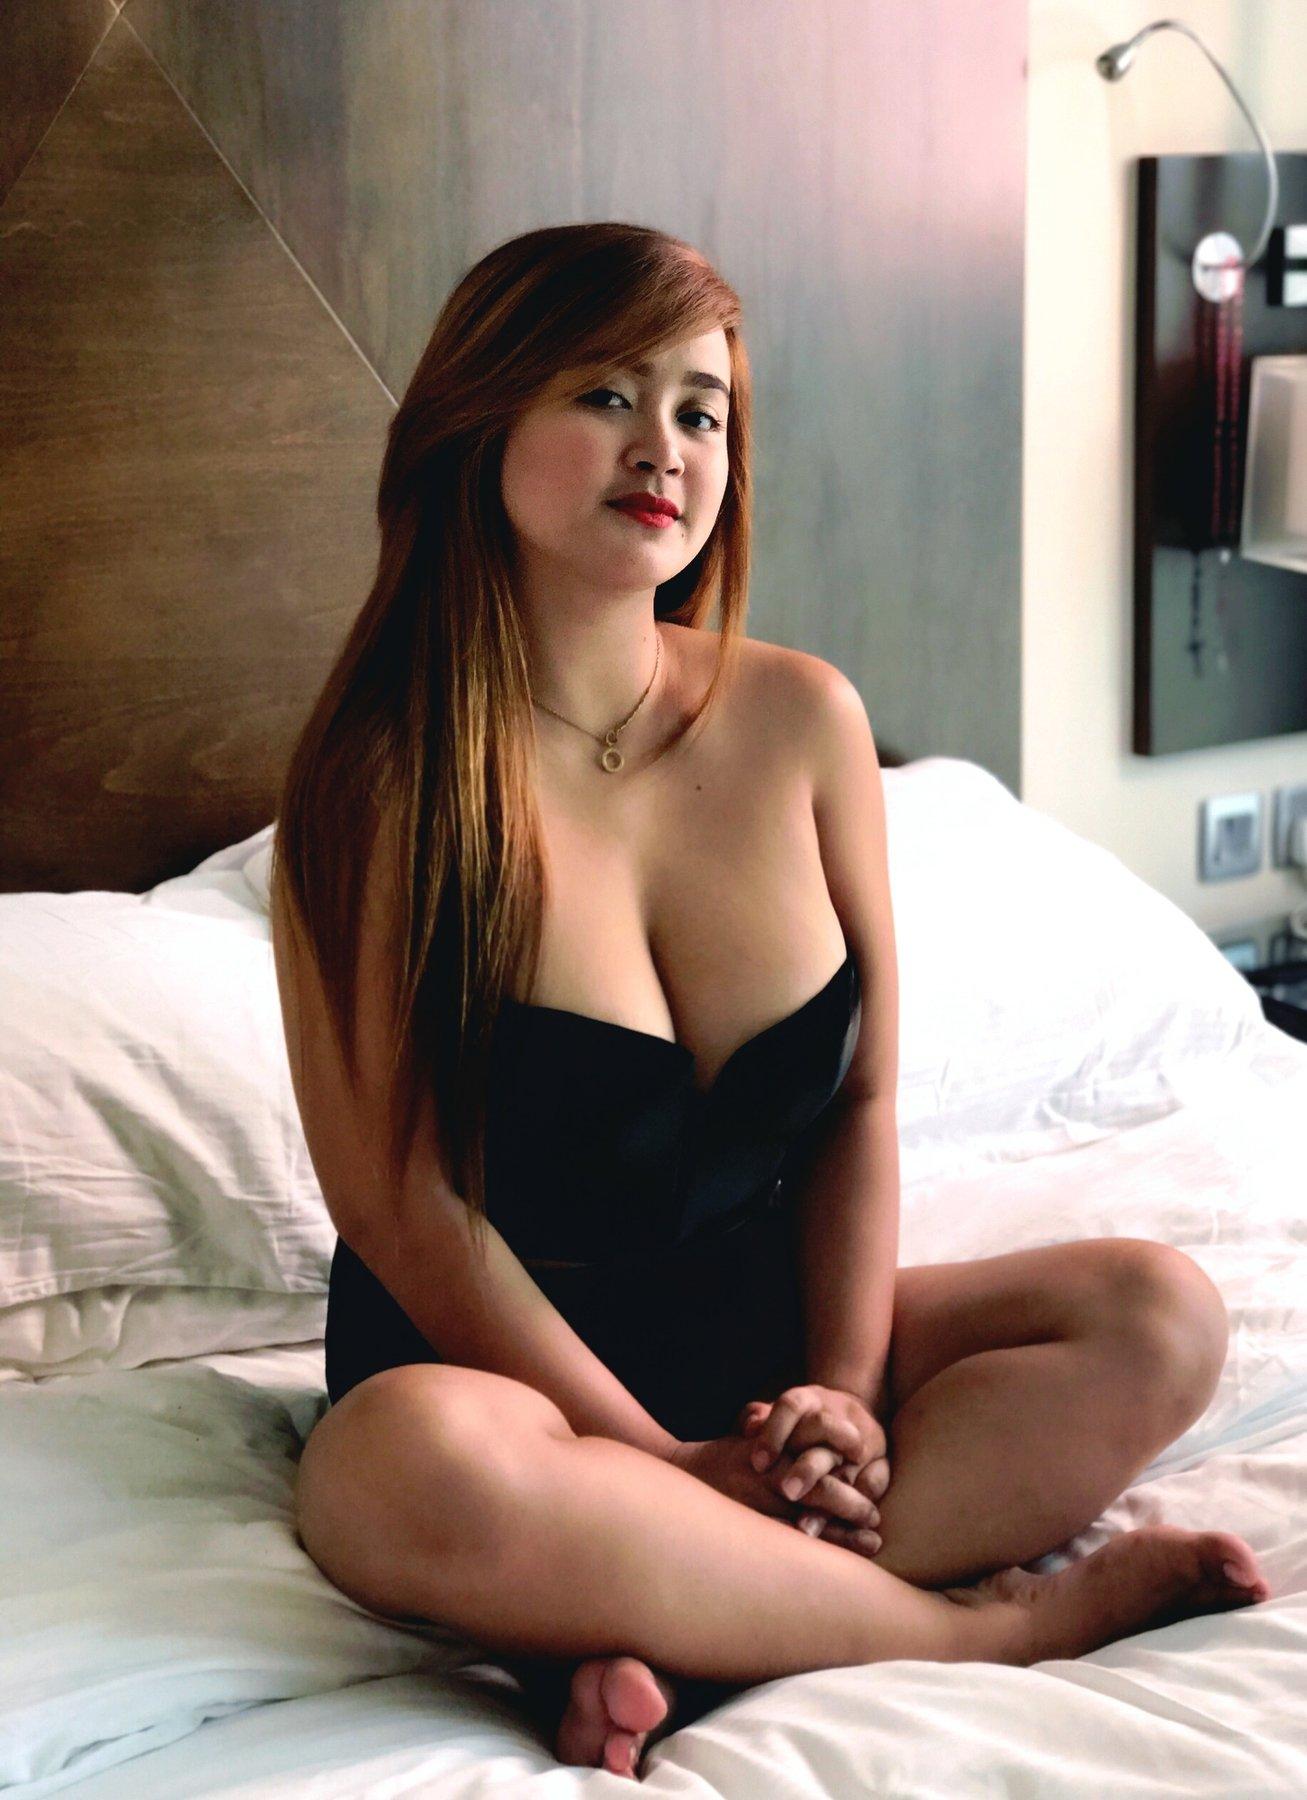 Manila escort girls